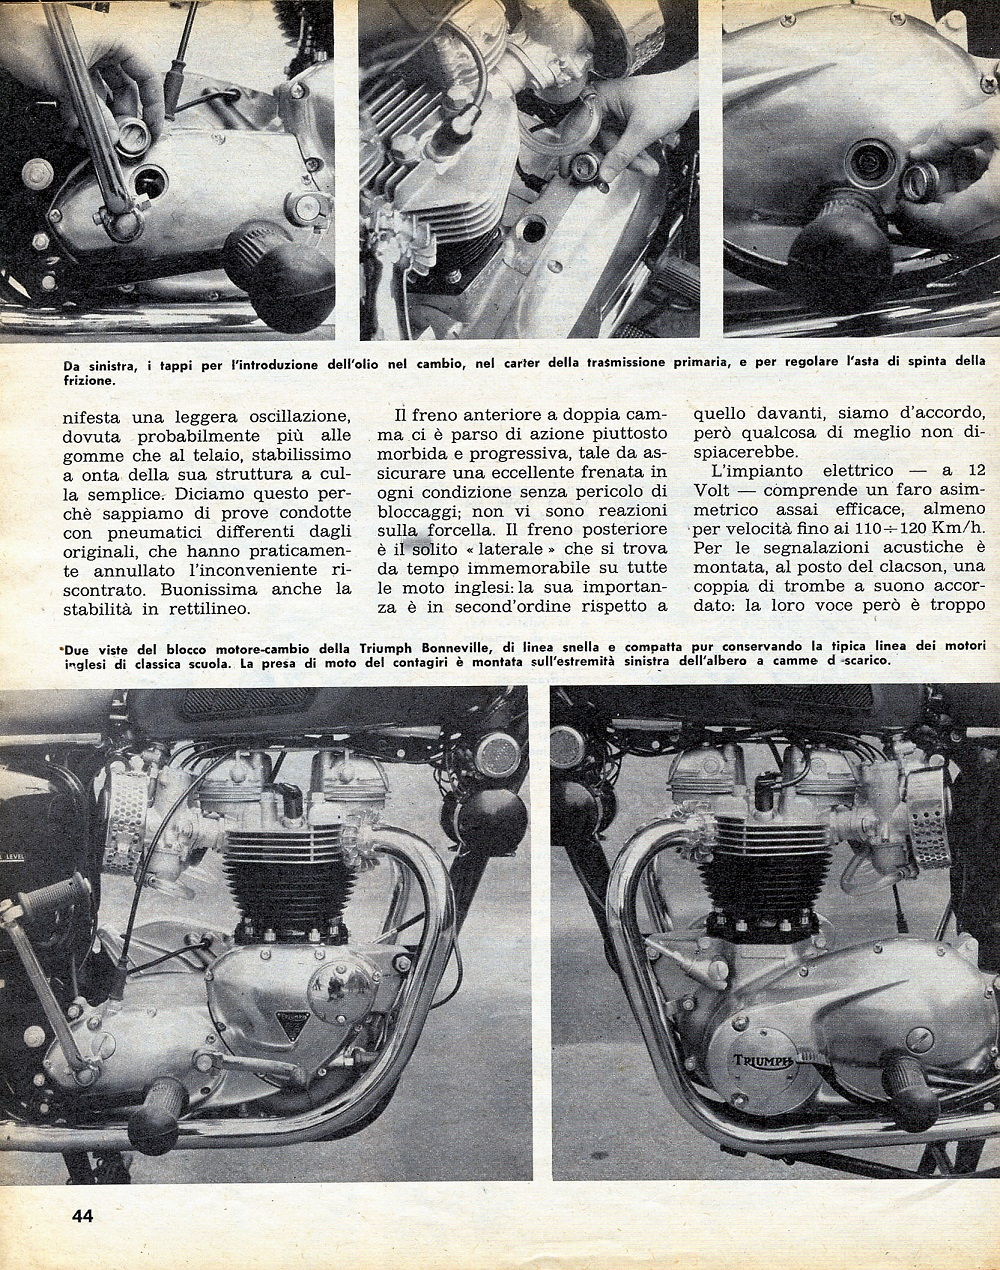 1969 Triumph Bonneville road test. 11.jpg